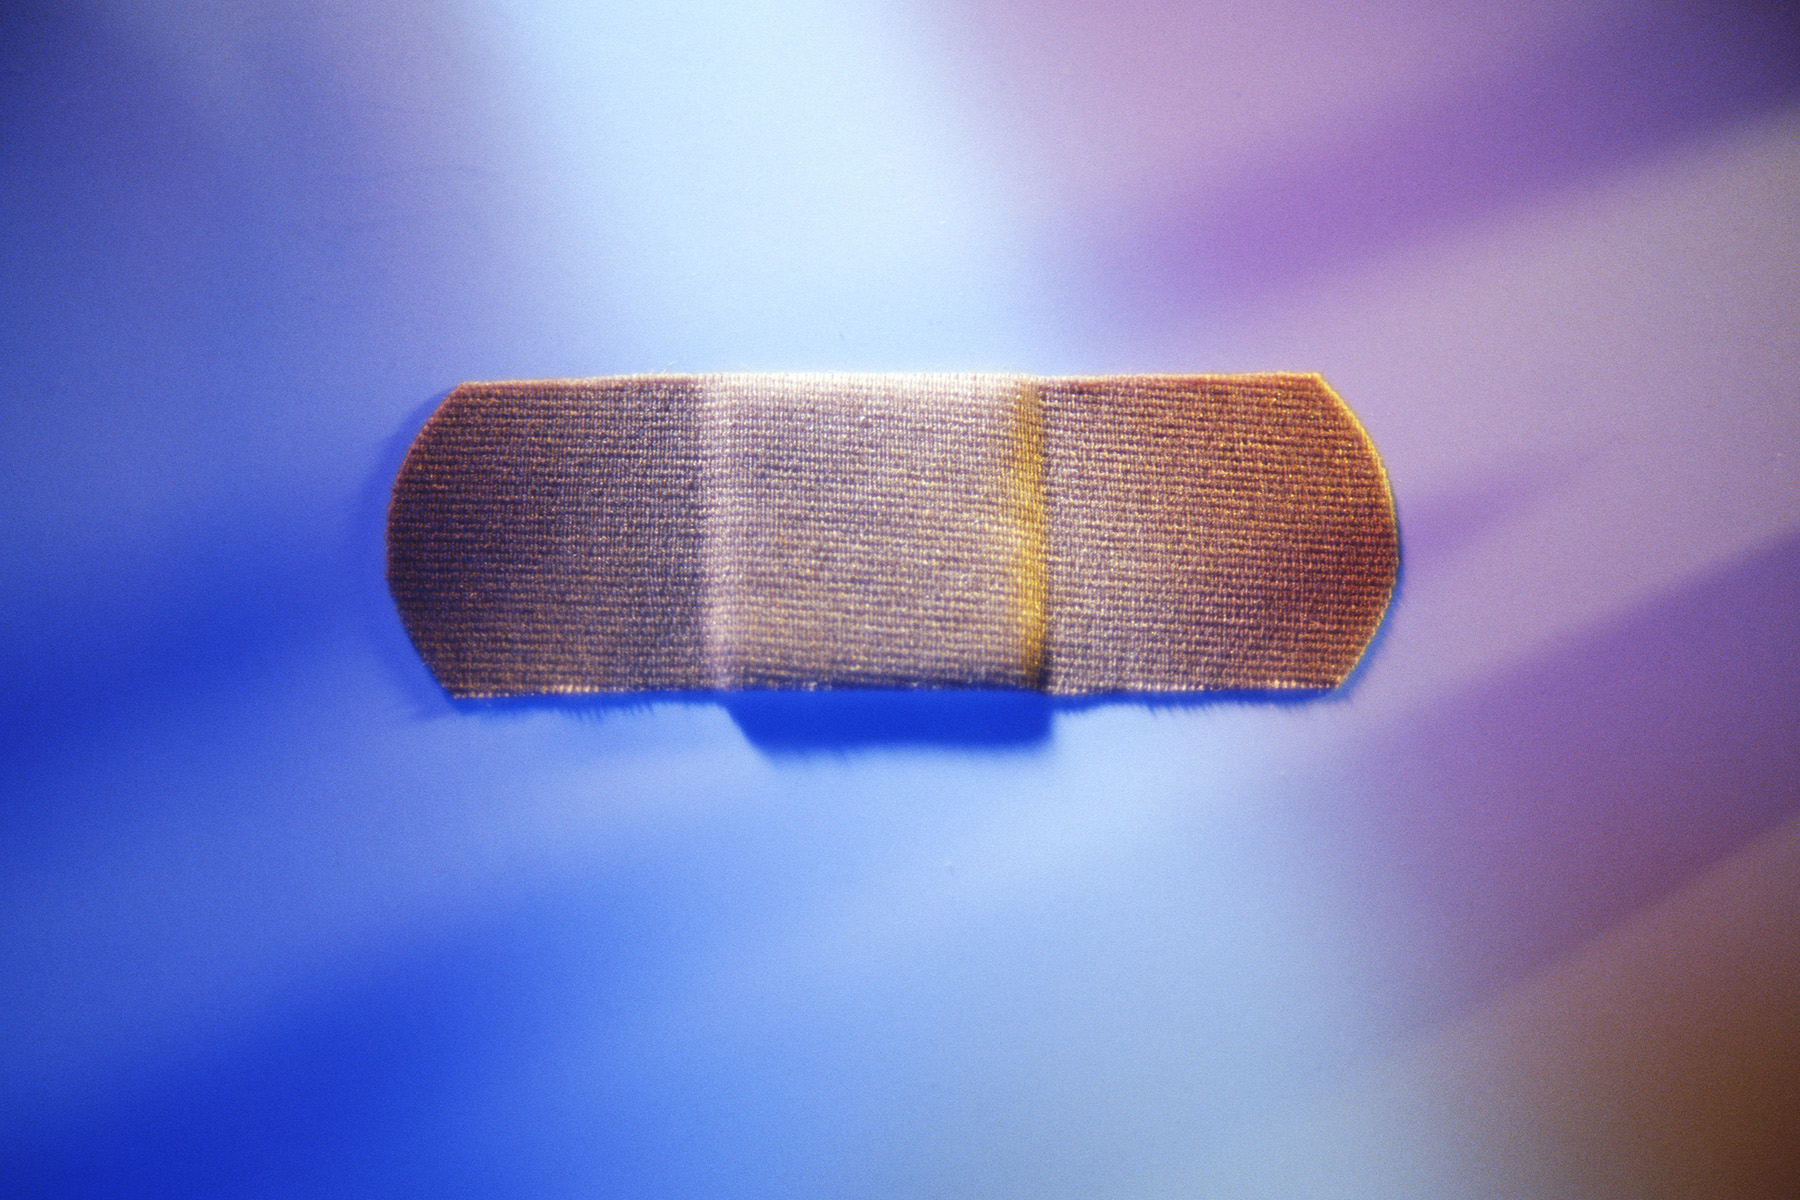 Band aid with blue and purple lighting